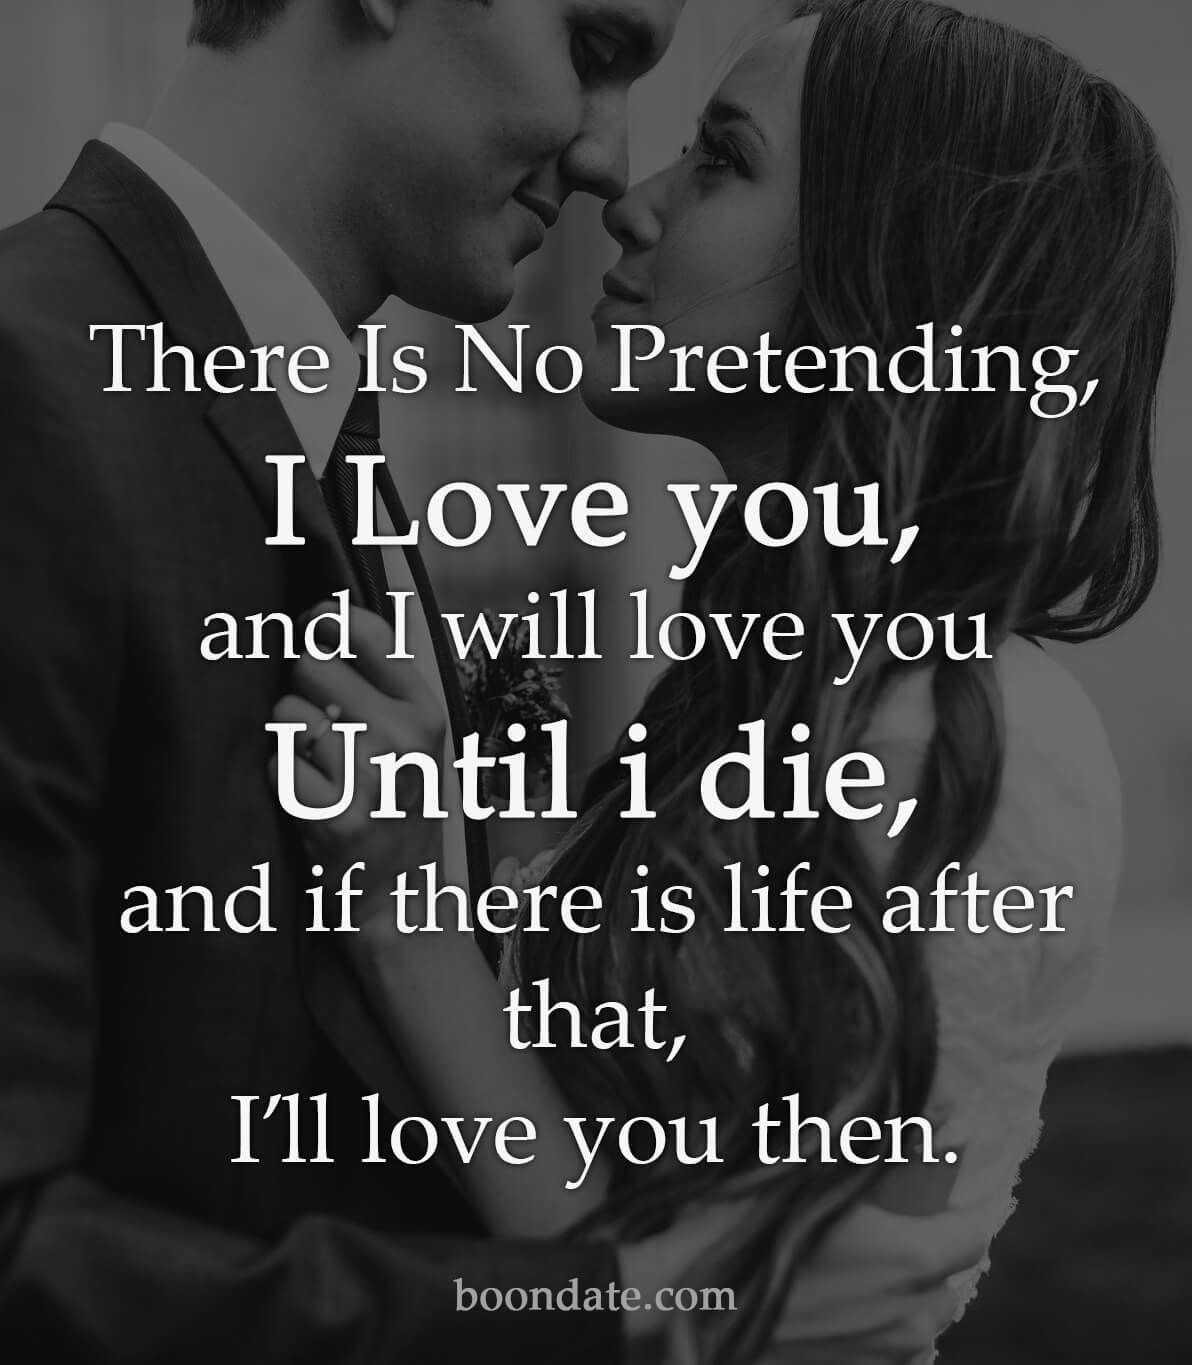 There Is No Pretending I Love You Love Tips On Boondate Love Quotes For Him Romantic Romantic Quotes Relationships Love Quotes For Him